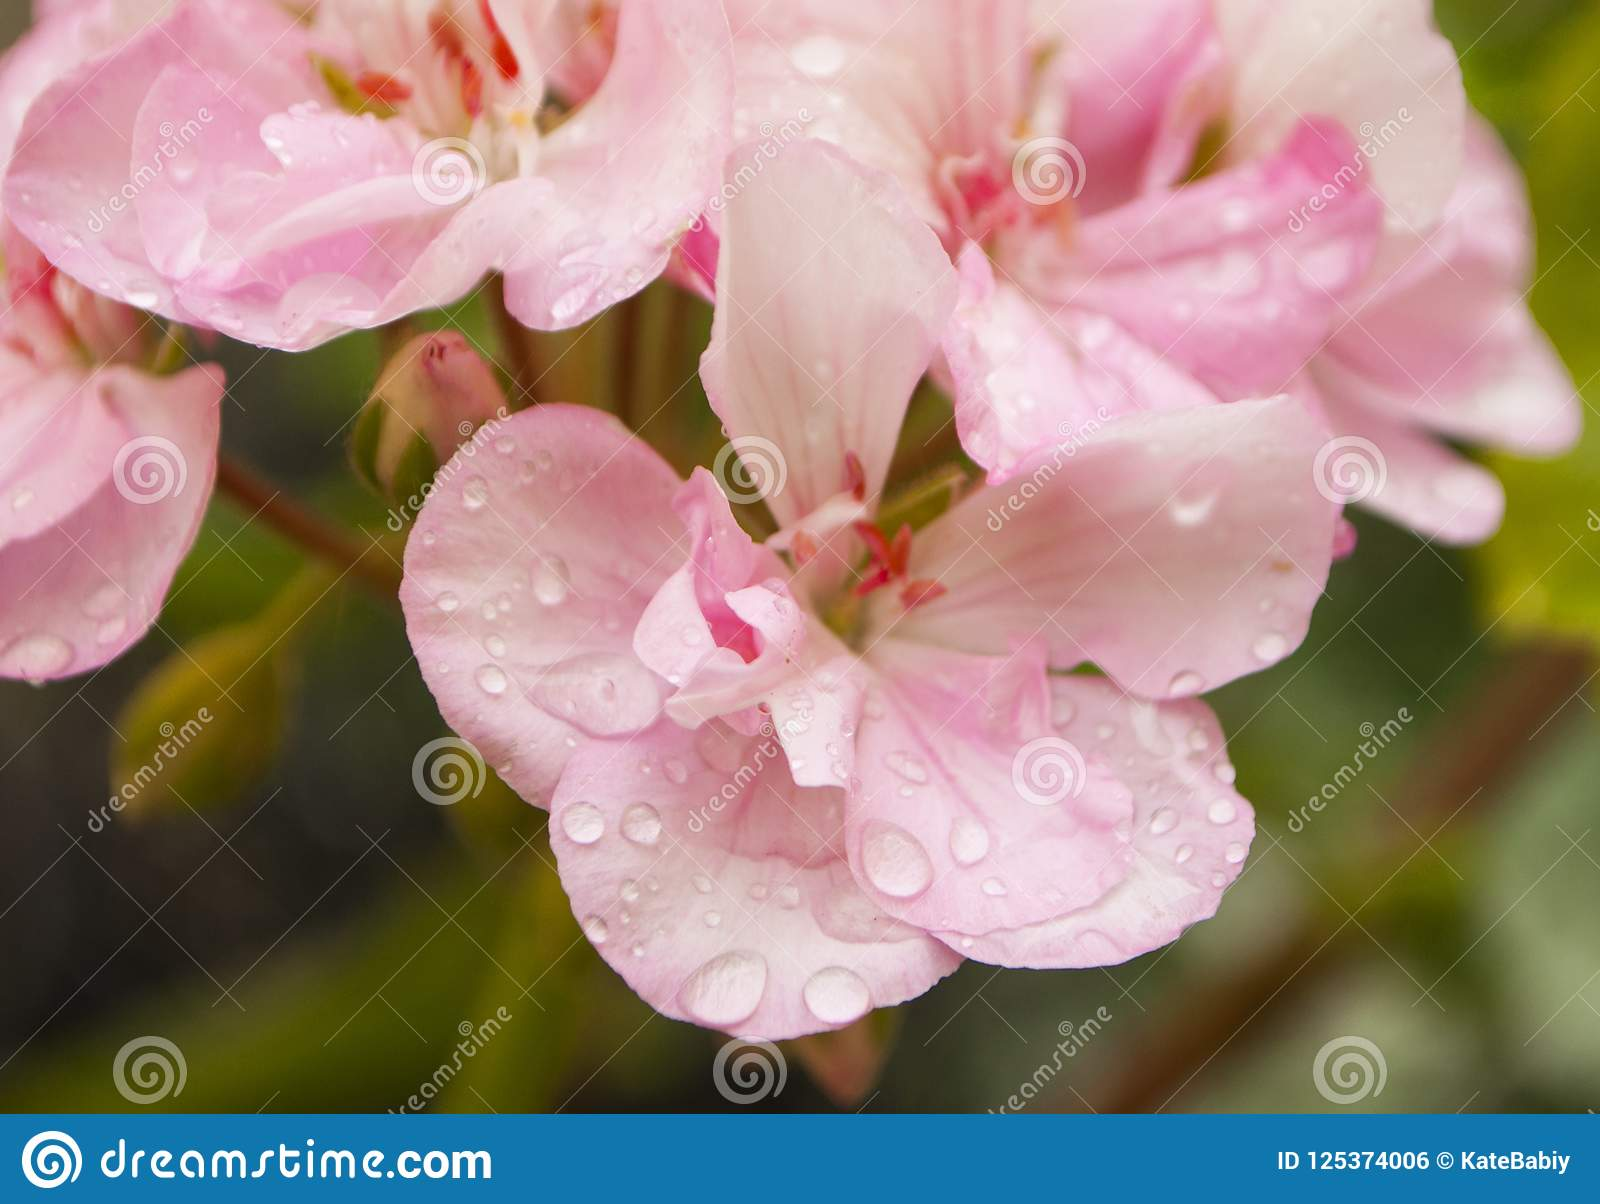 Close up of pink geranium flower.